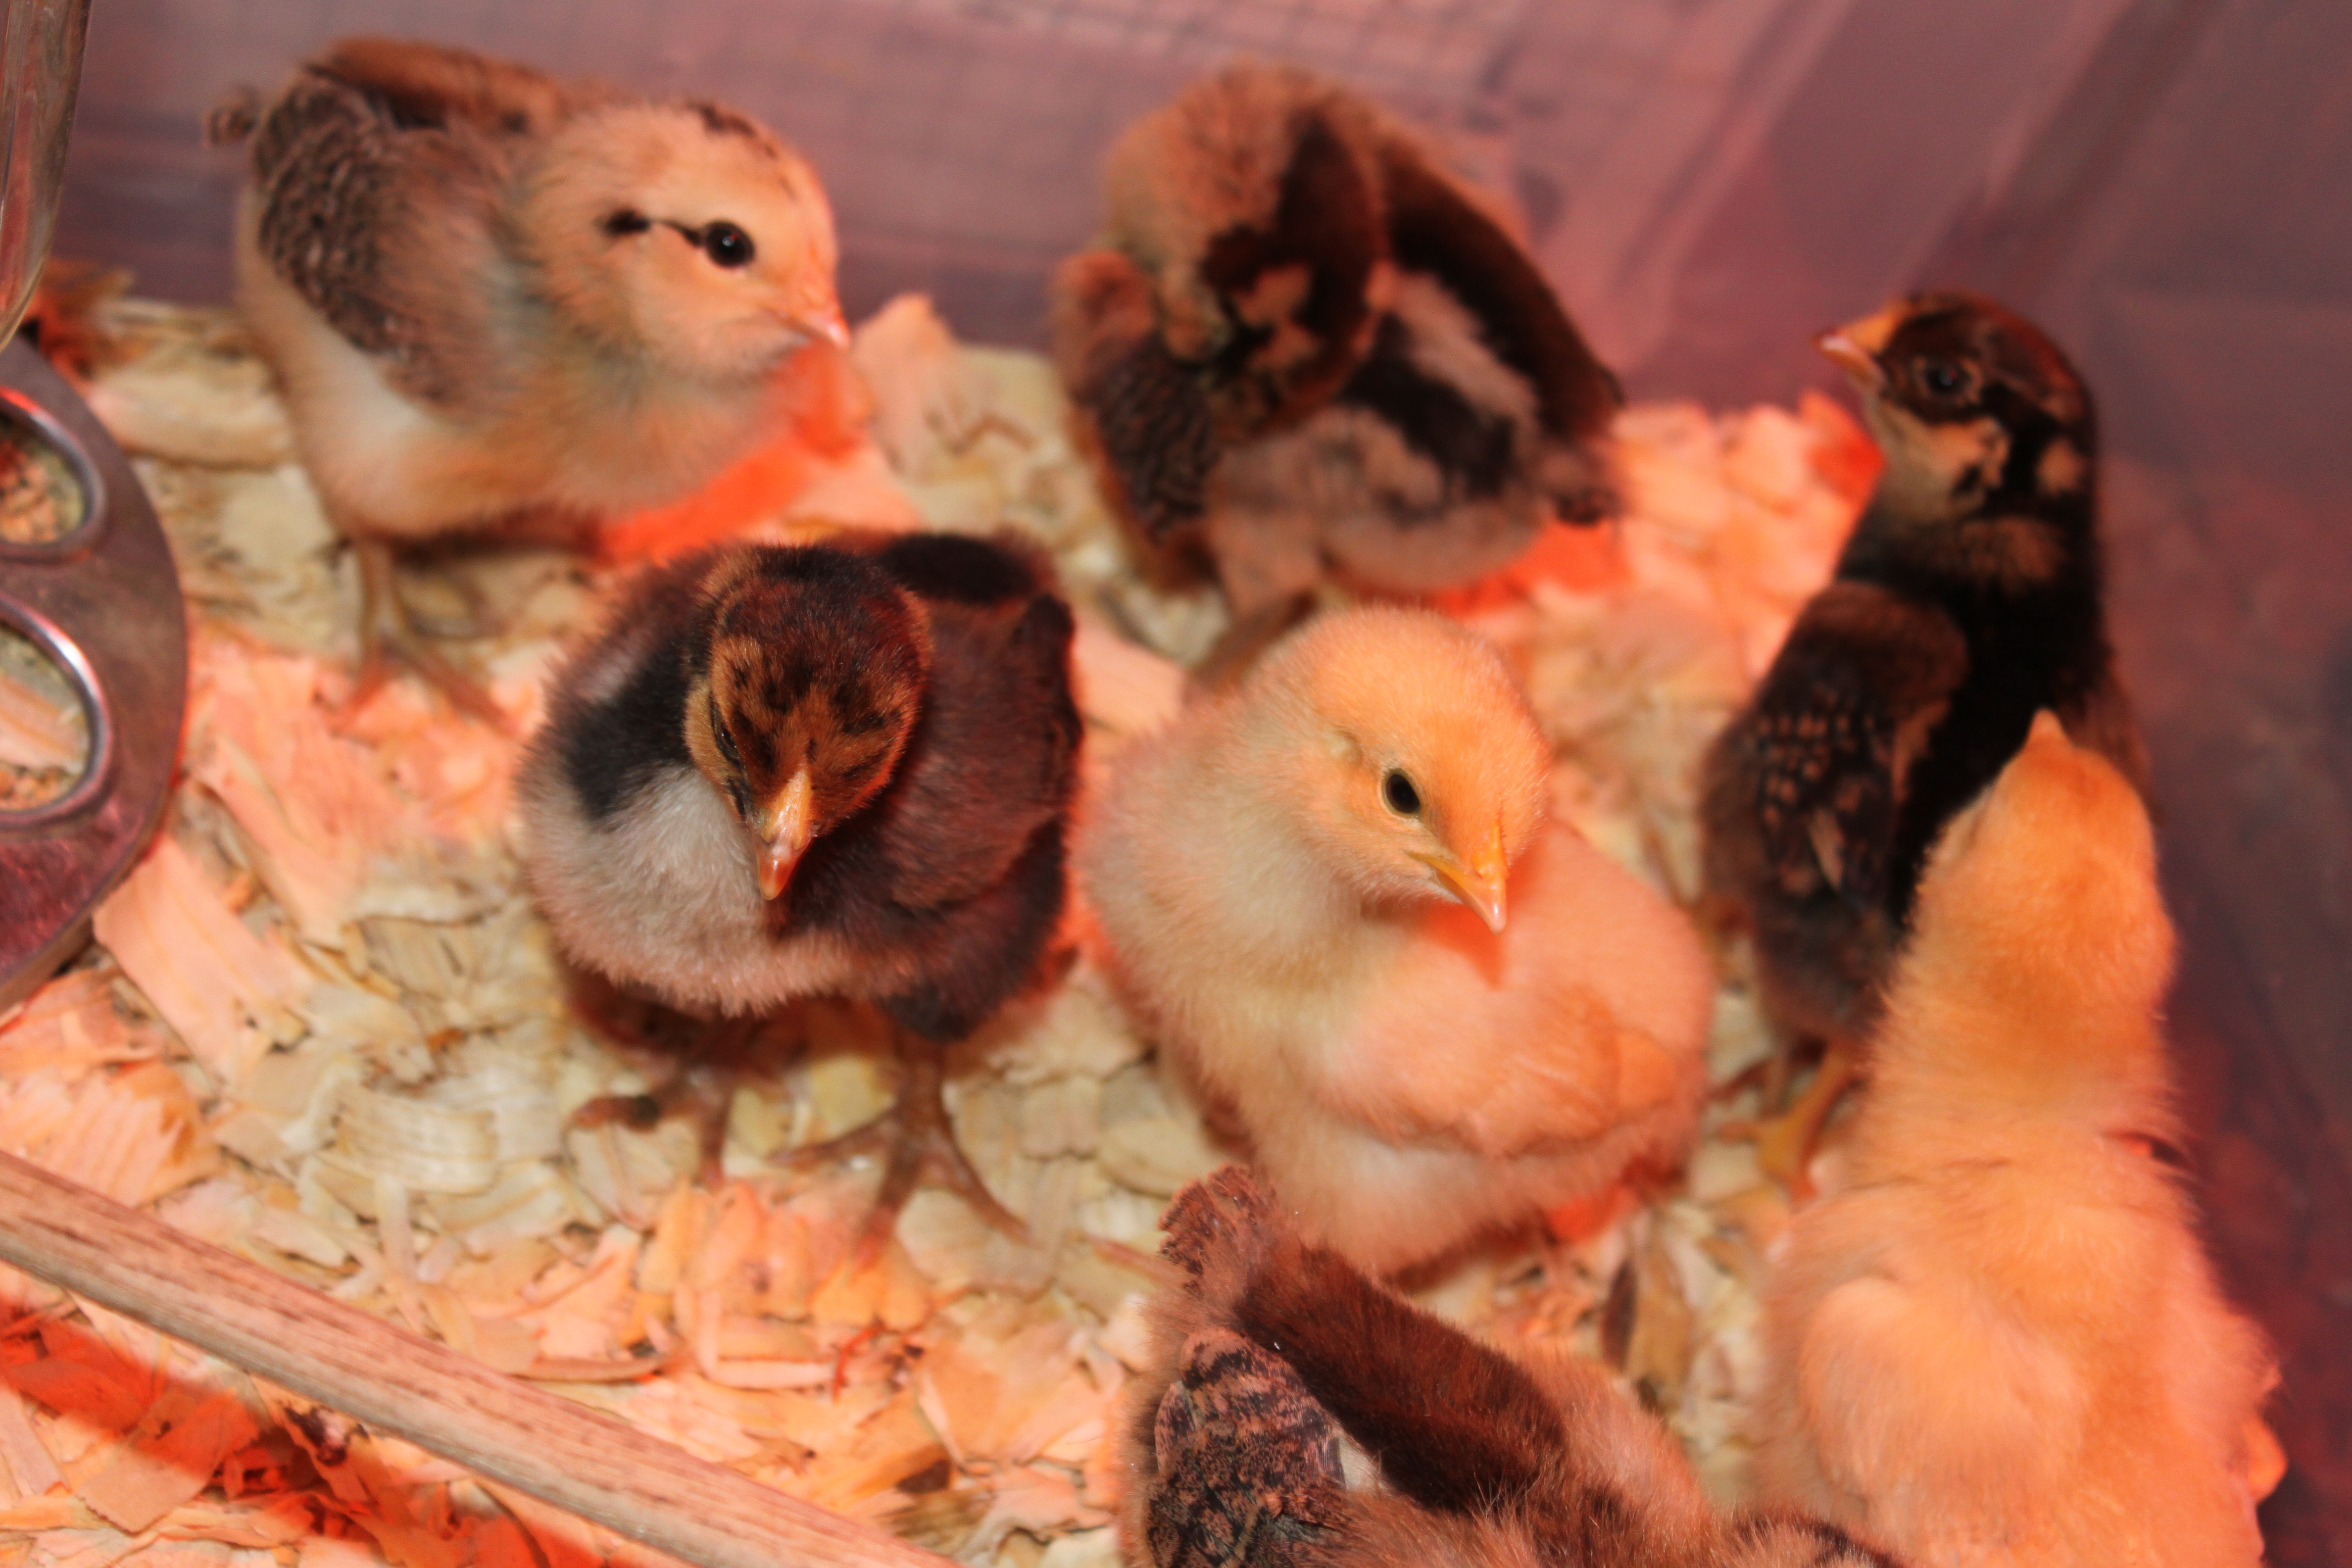 100 backyard chicken blog do chicken coops attract mice and